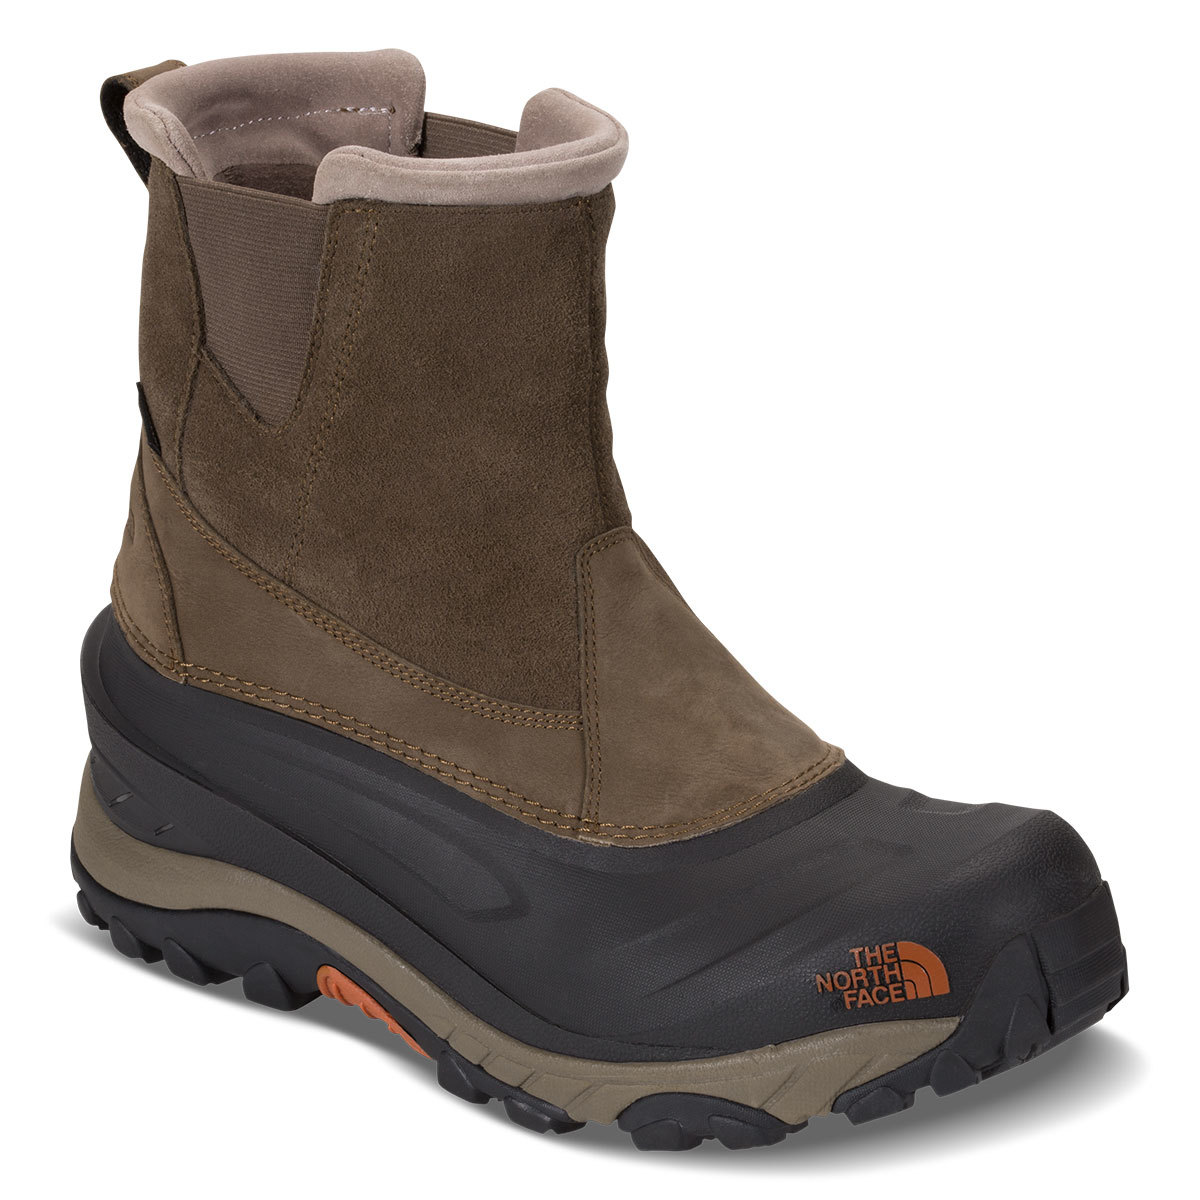 The North Face Men's Chilkat Iii Pull-On Mid Waterproof Winter Boots, Mudpack Brown/orange